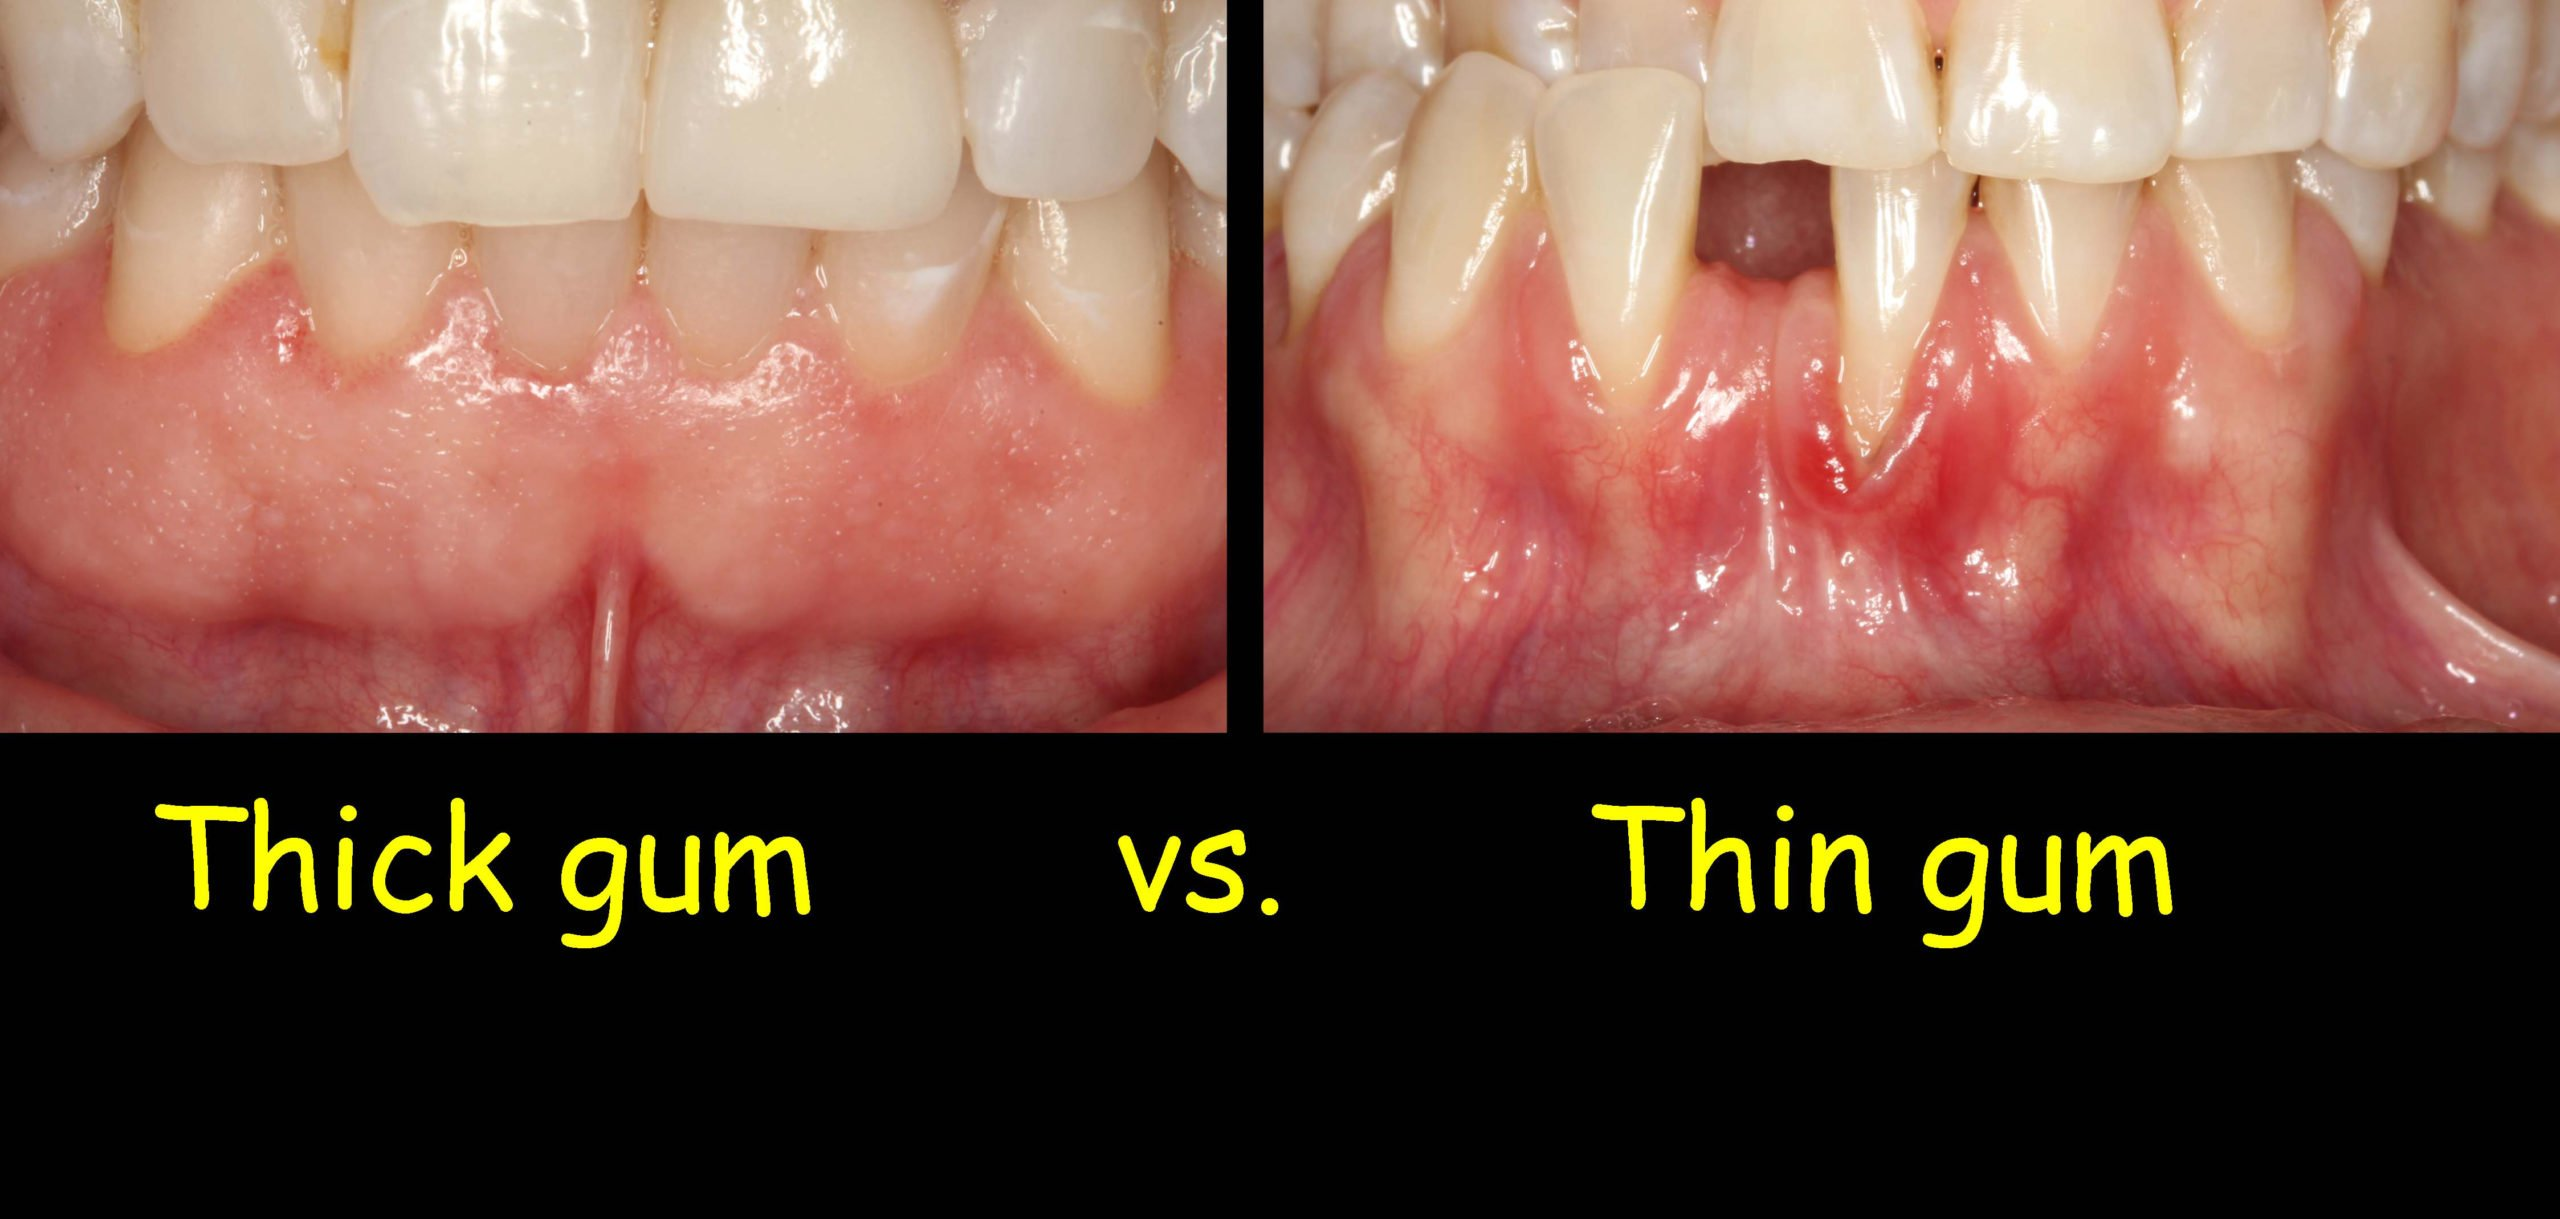 The Teeth Look Long And The Gums Look Thin. What Is Gum Inflammation?